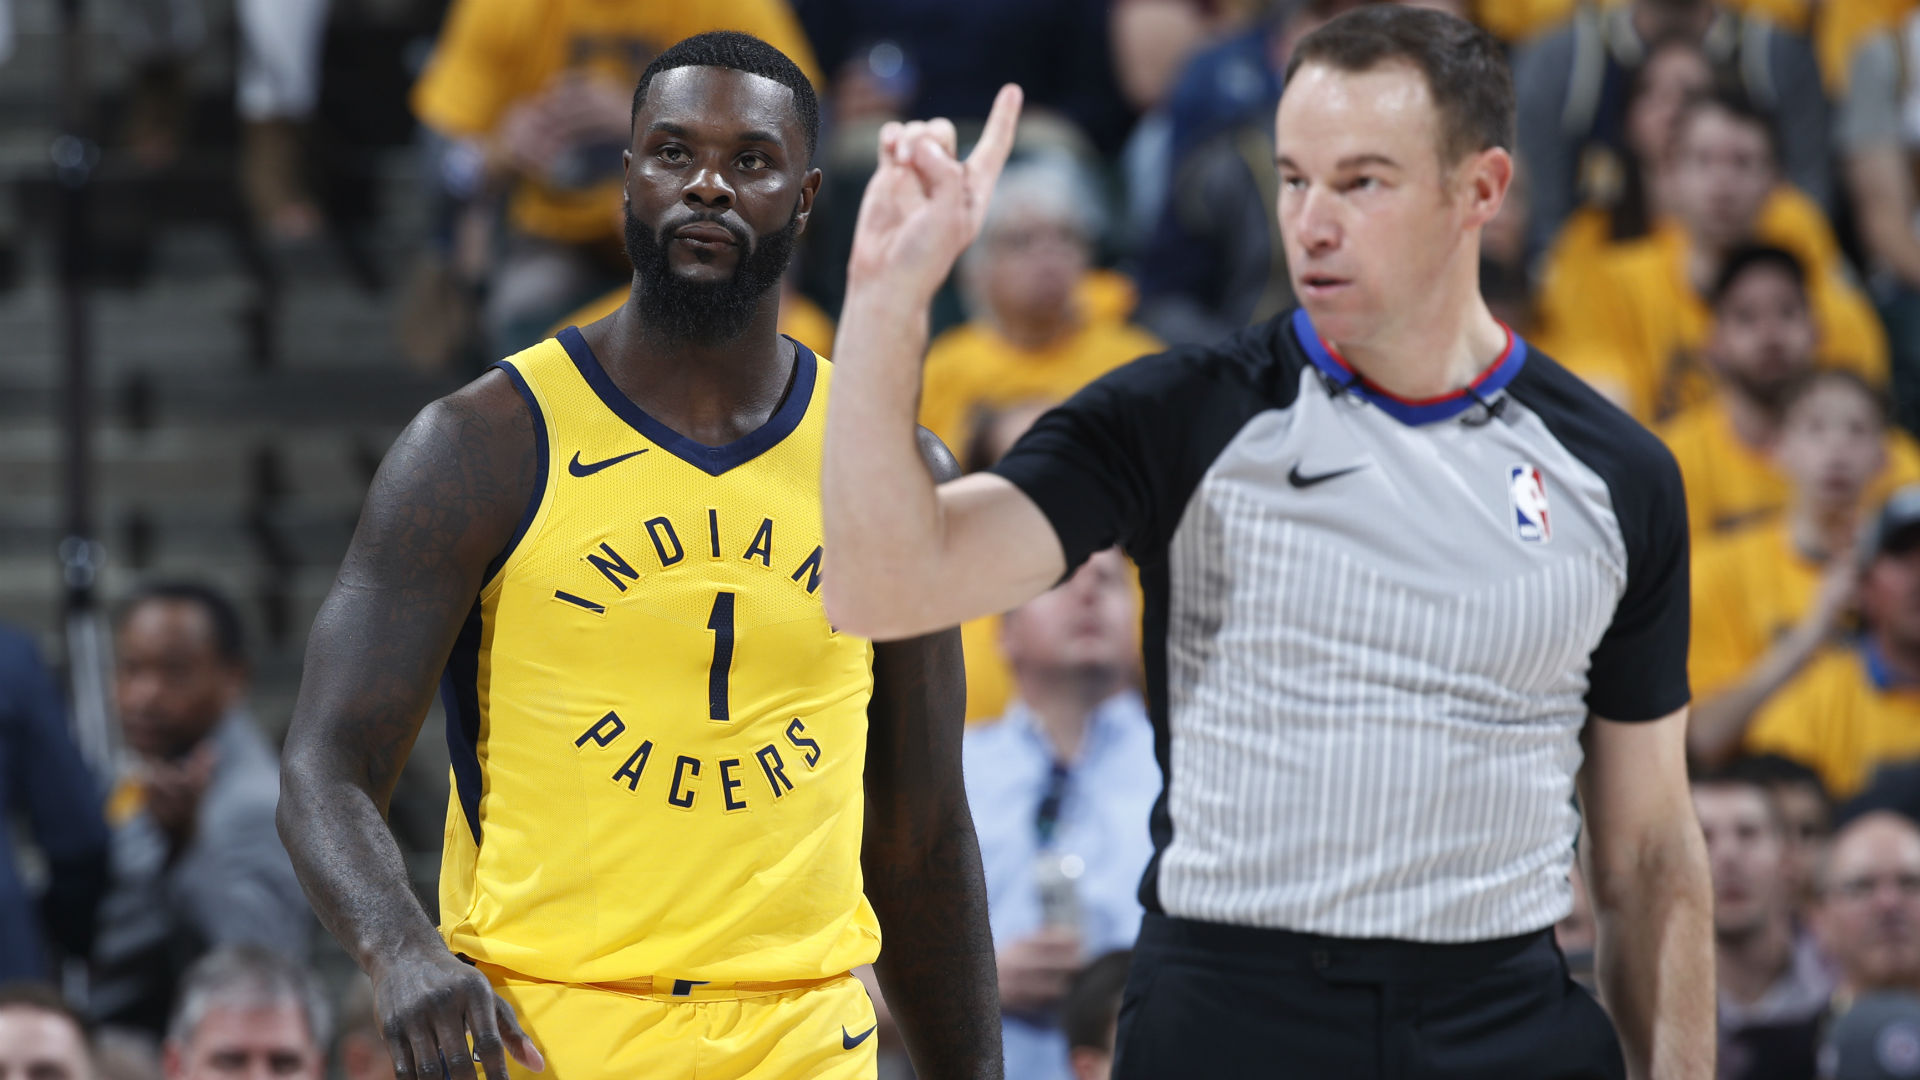 NBA replay official explains ruling on Lance Stephenson-Jeff Green scuffle